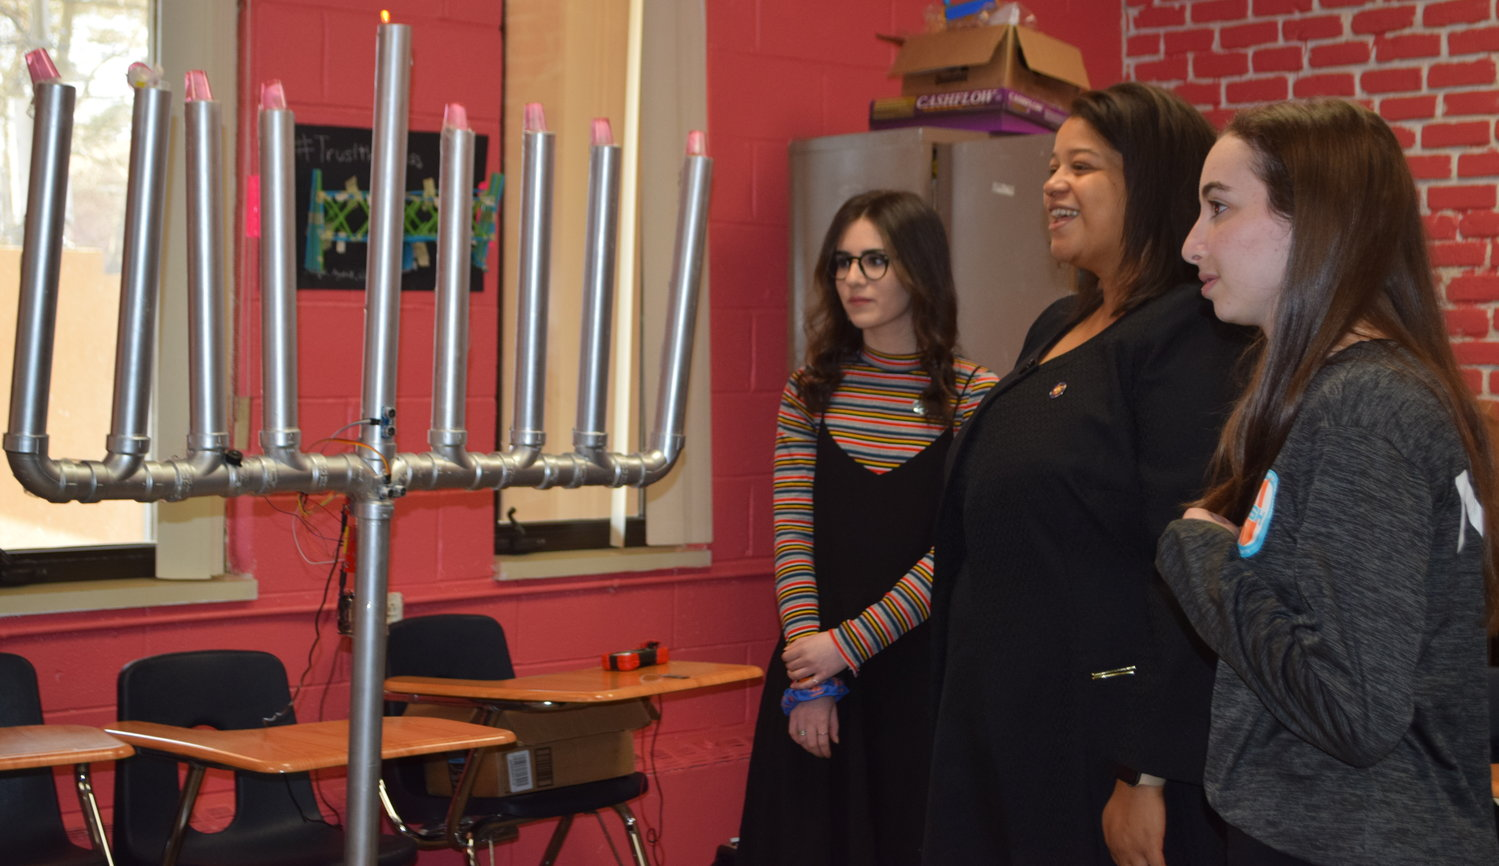 Combining religion and science, juniors Tal Galon, left, and Avigayil Roffe demonstrated their musical Hanukkah menorah for State Assemblywoman Michaelle Solages.